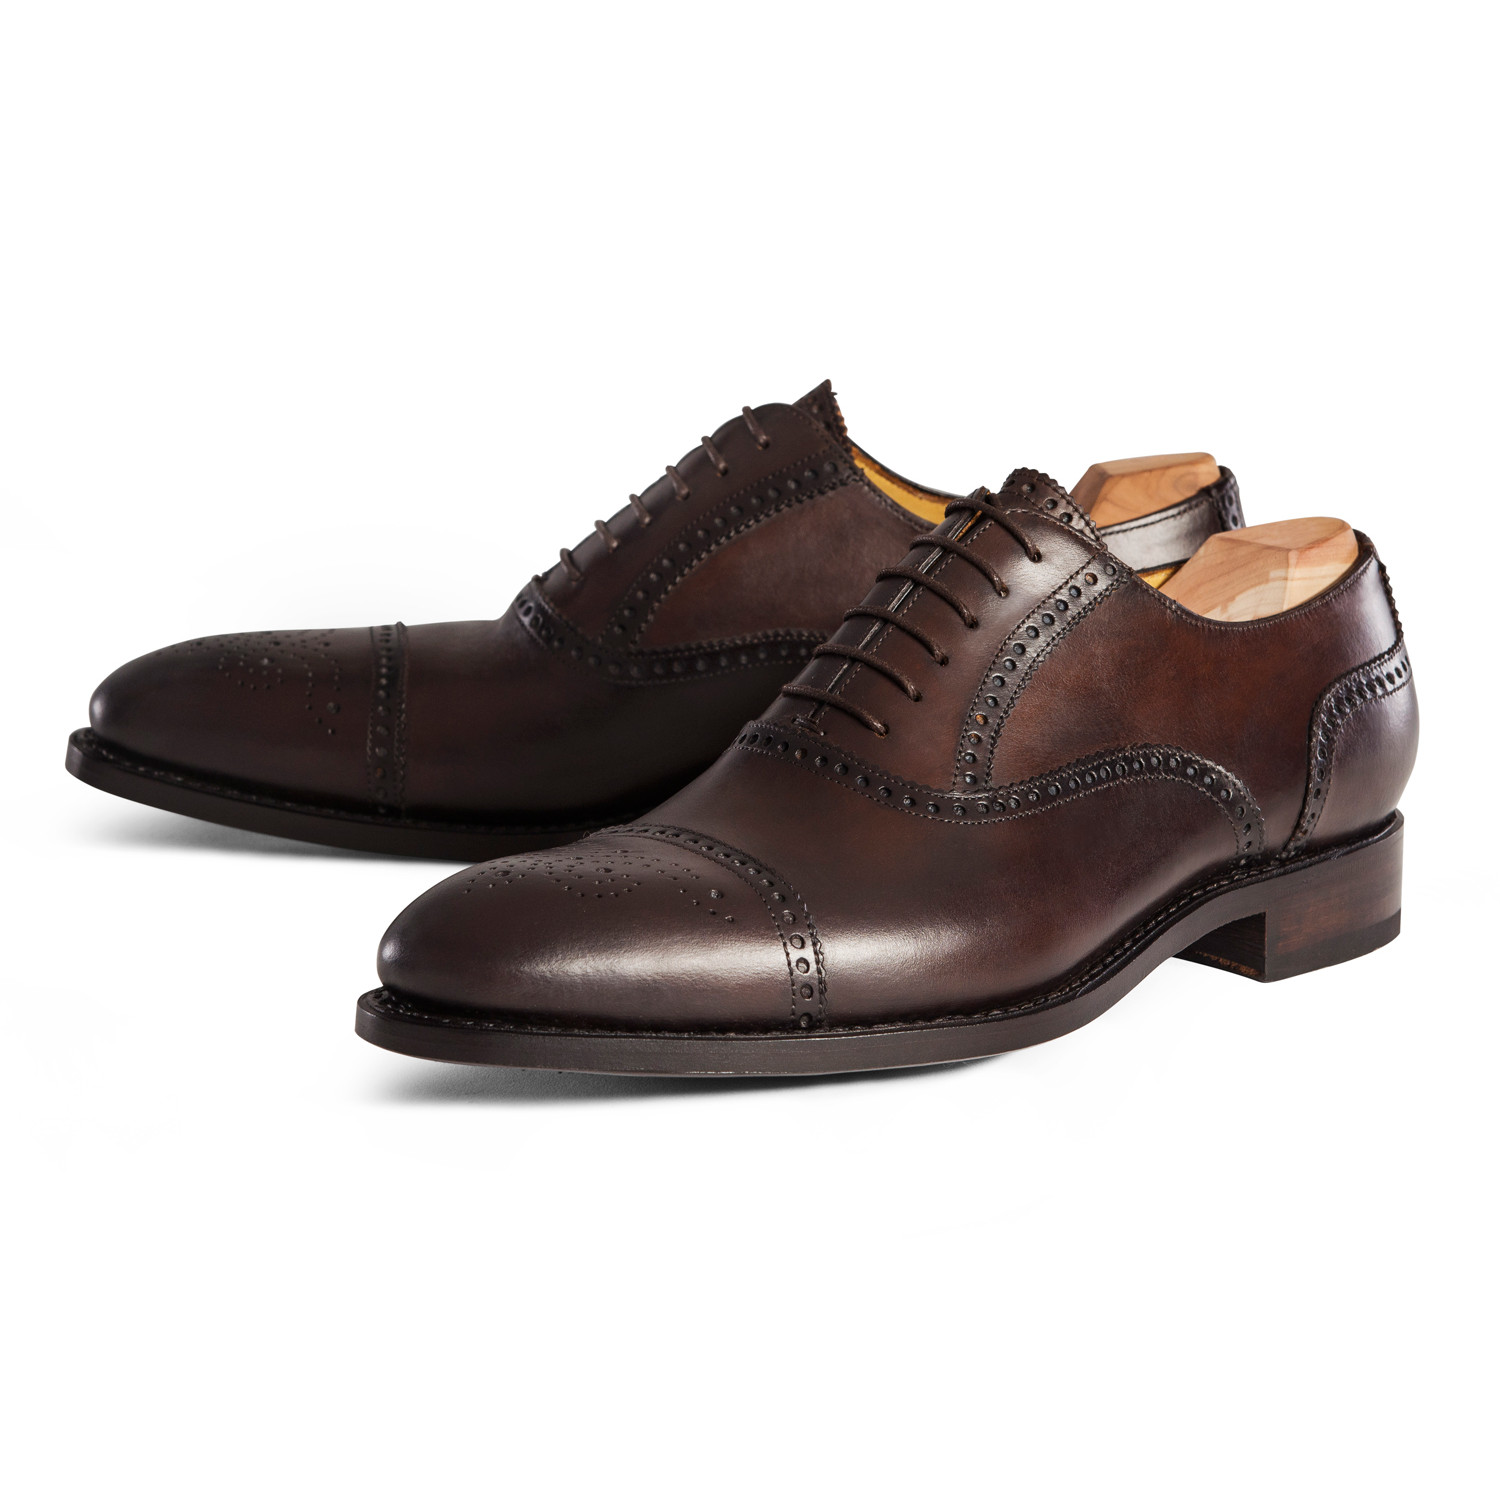 9a4a94044a0269 Cap Toe Oxford    Chocolate (UK  6.5) - Handmade Brogues - Touch of ...